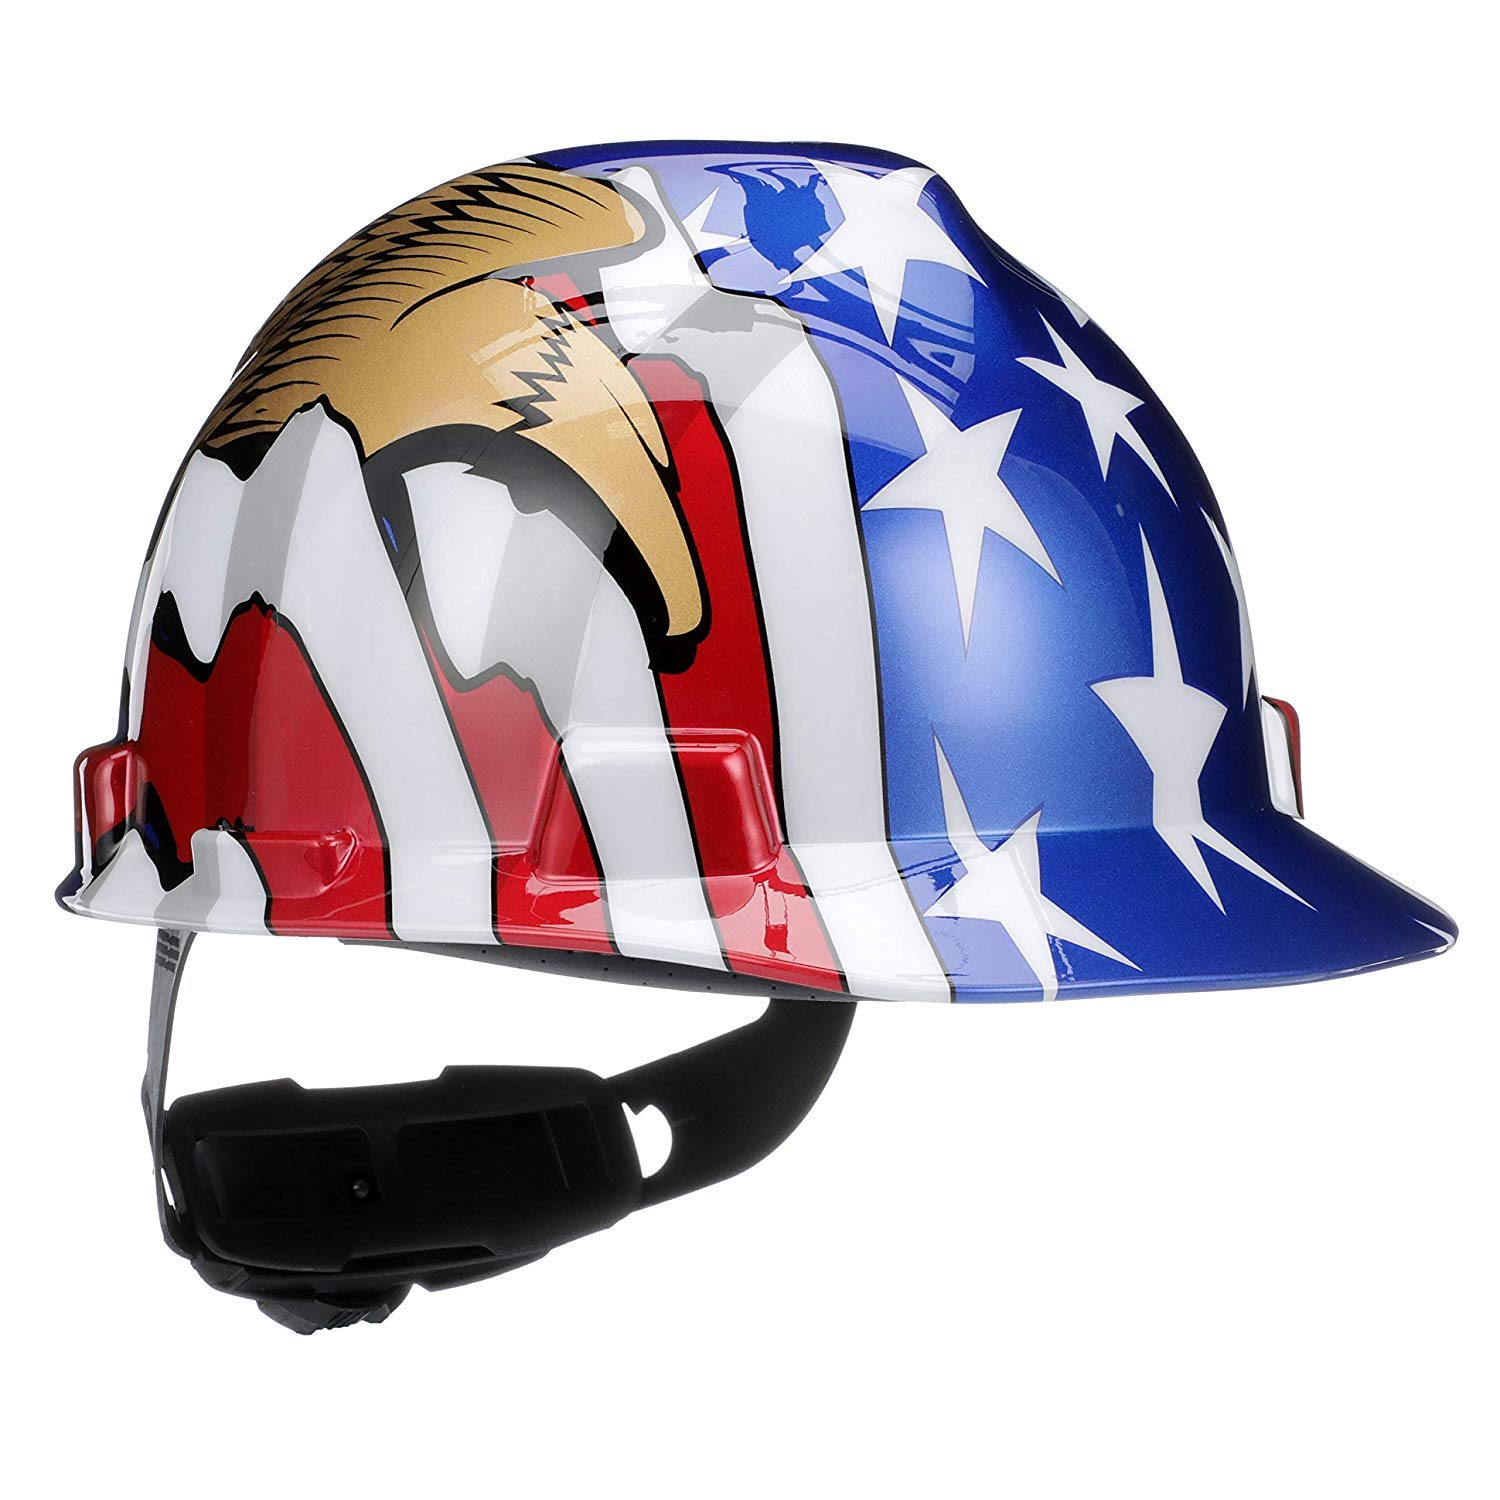 MSA 10052947 V-Gard Hard Hat Front Brim with Ratchet Suspension, Standard, American Flag w/ 2 Eagles (36 Pack) by ISP by MSA (Image #1)